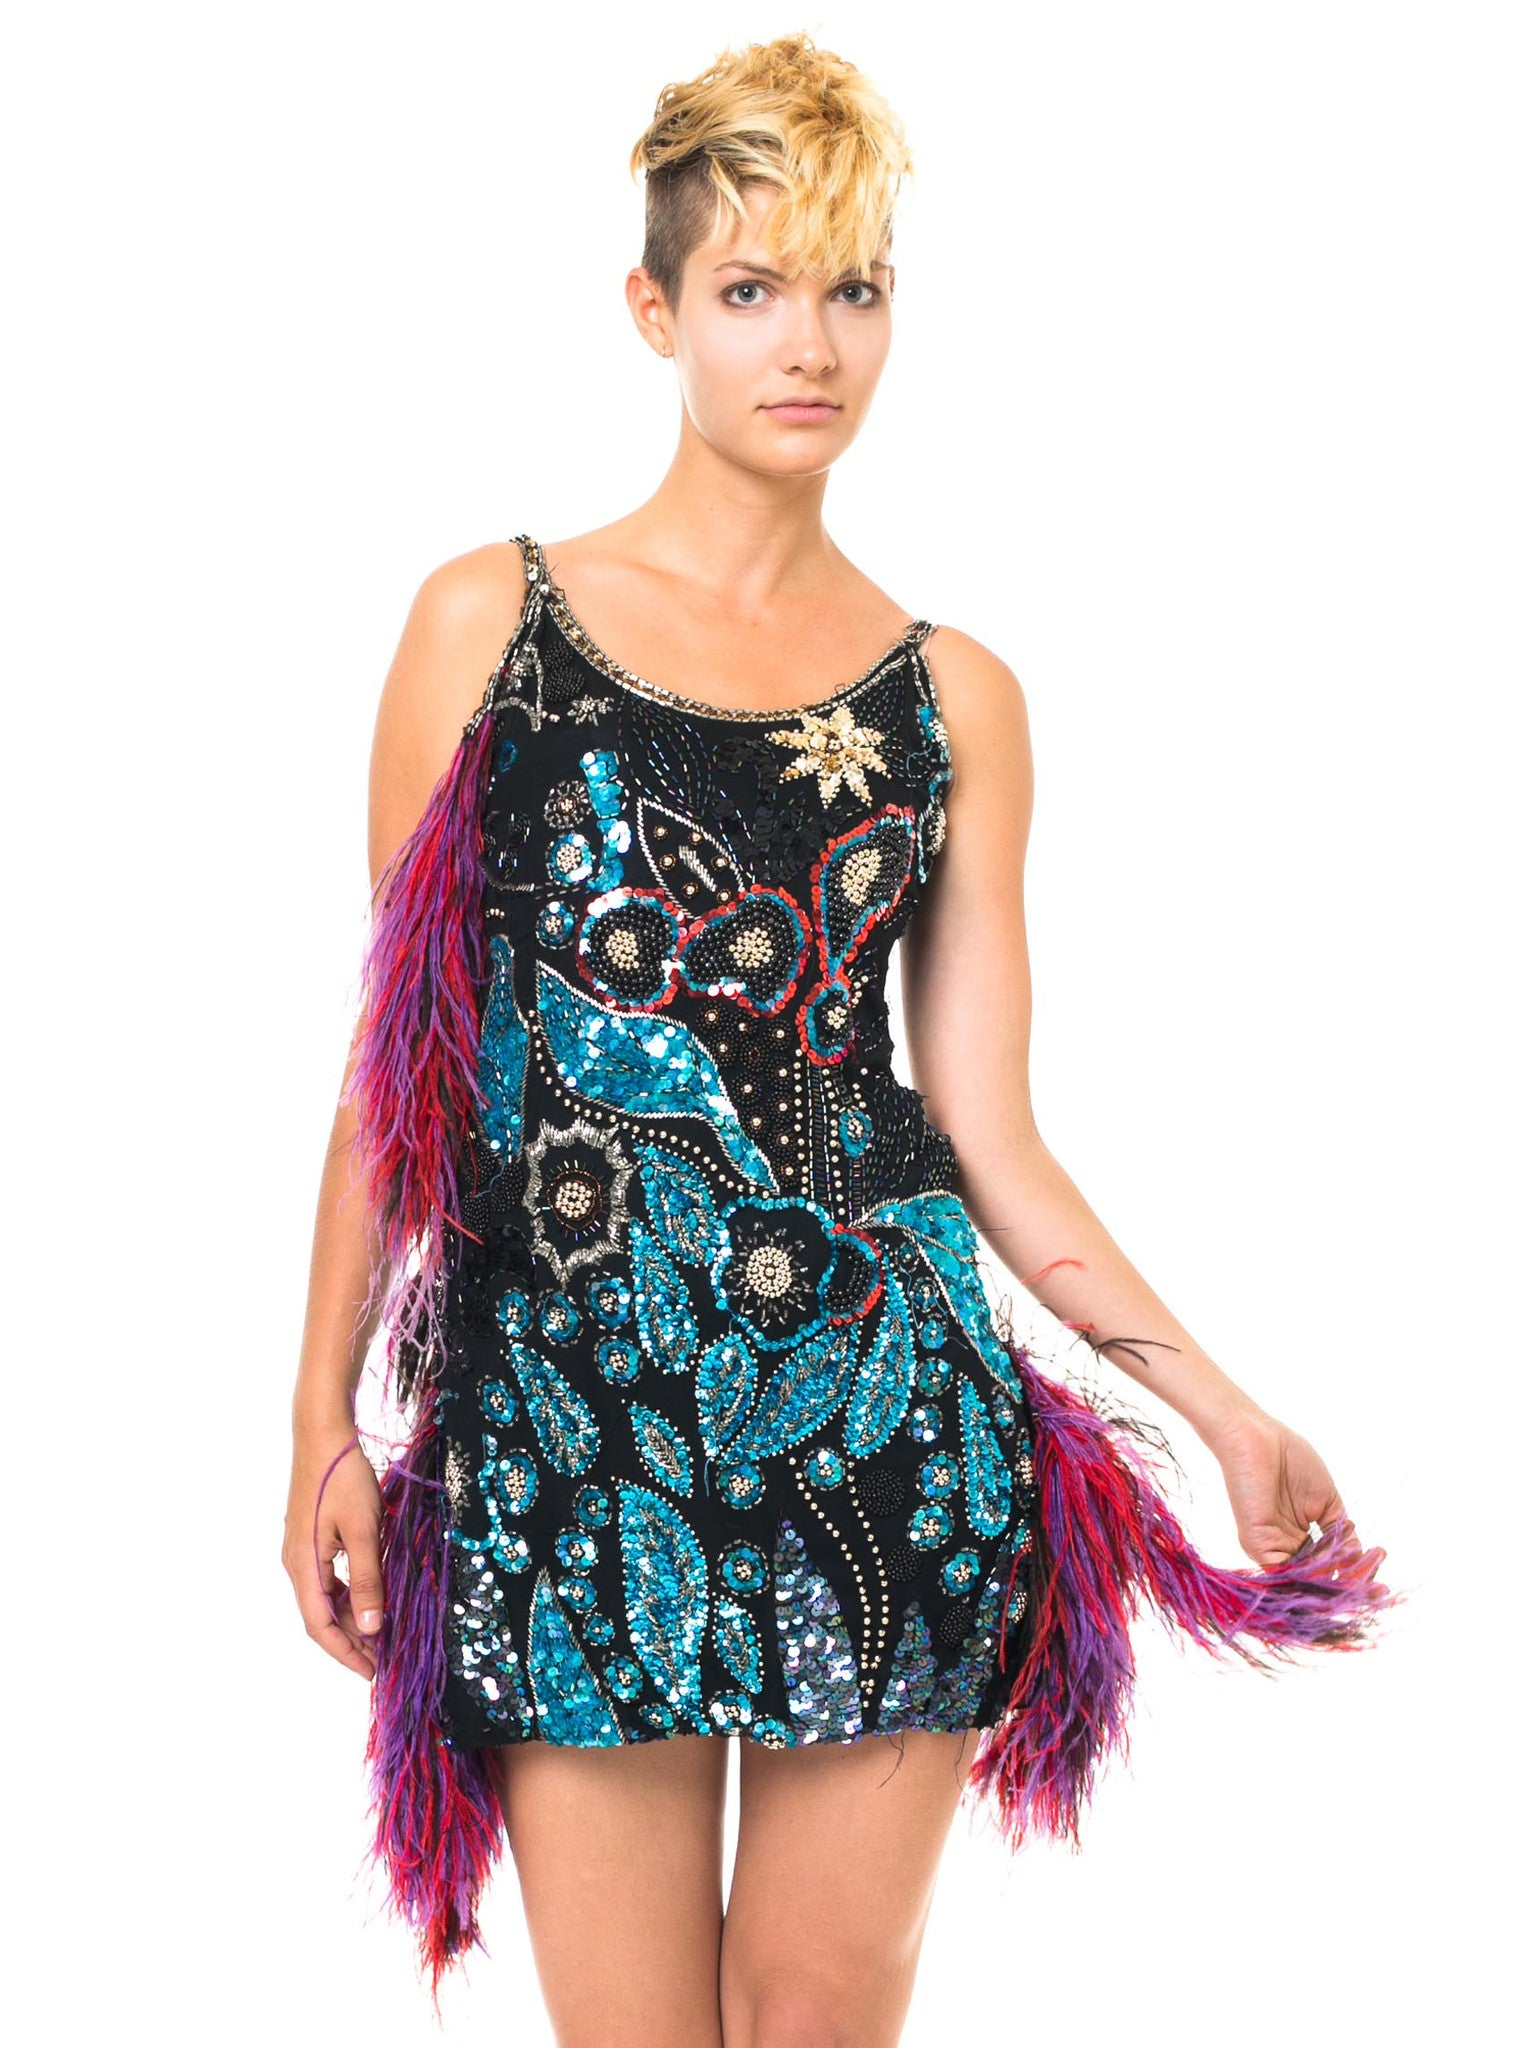 Colorful Fun And Sparkly Cocktail Dress With Fringe Detail